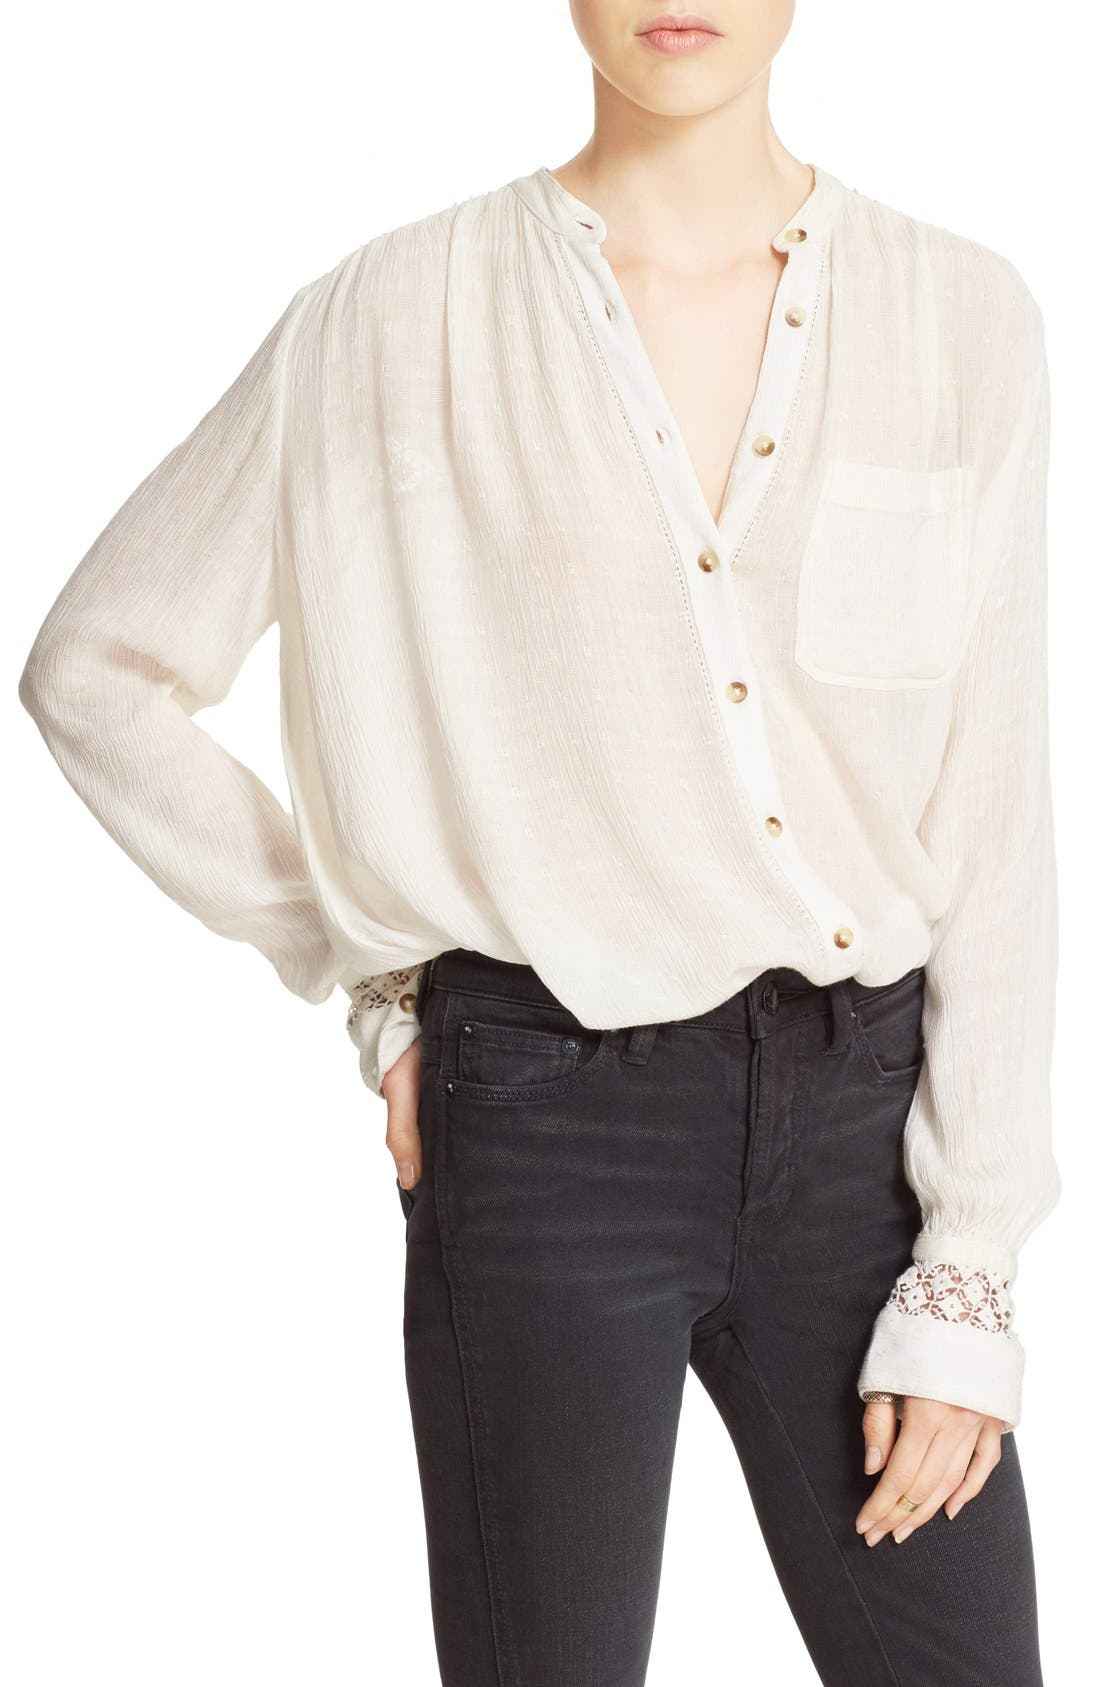 Alternate Image 1 Selected - Free People 'The Best' Button Front Blouse